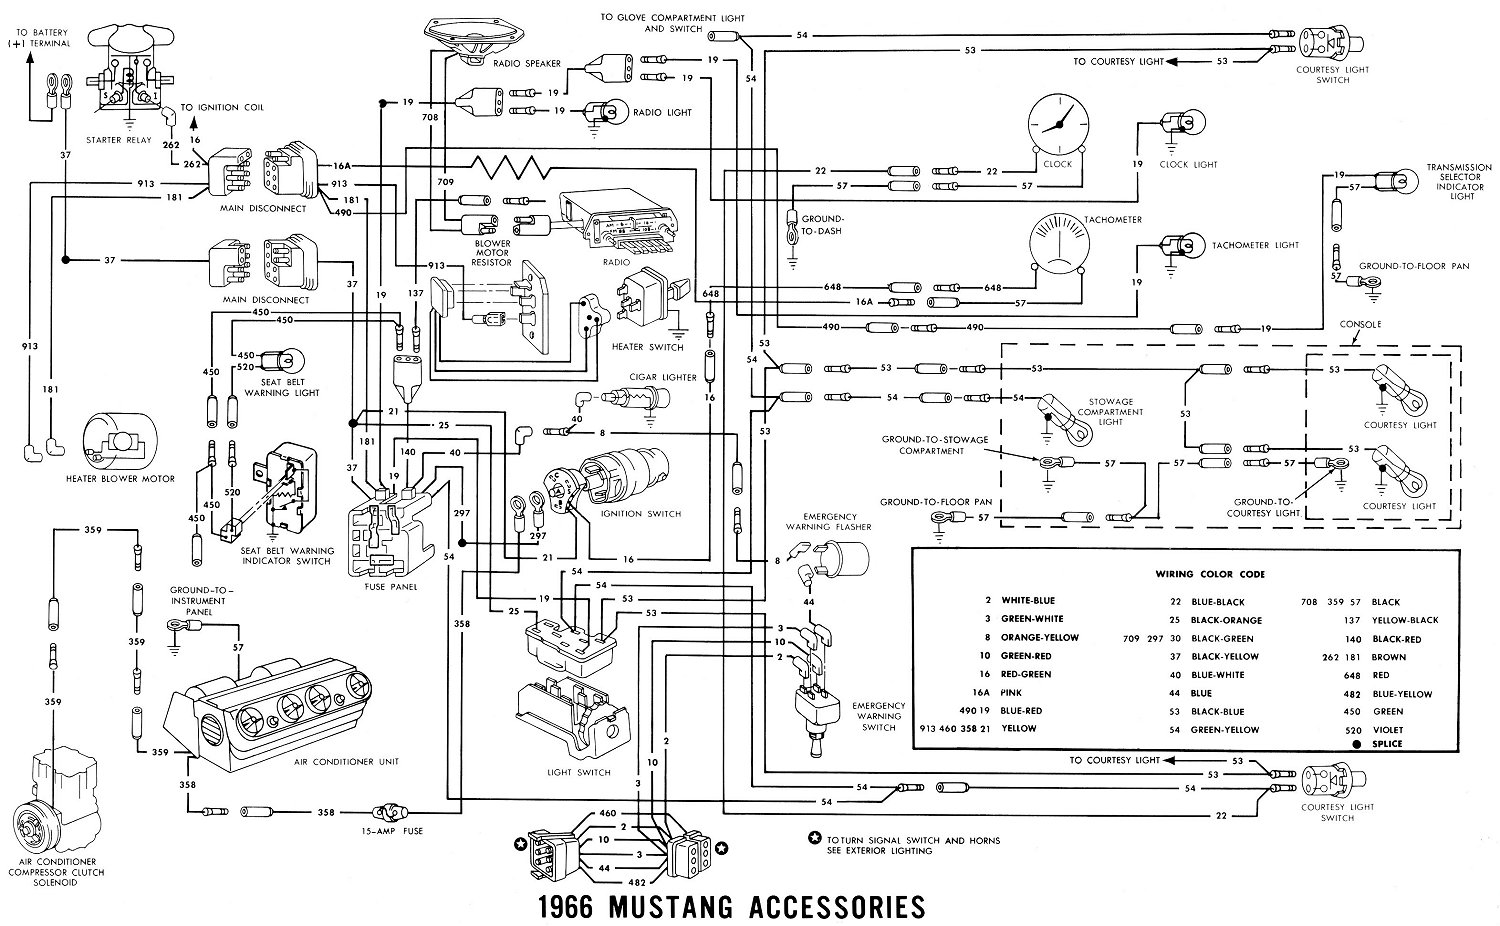 hight resolution of 1966 mustang wiring diagrams average joe restoration 66 mustang engine wiring 66 mustang wiring diagram